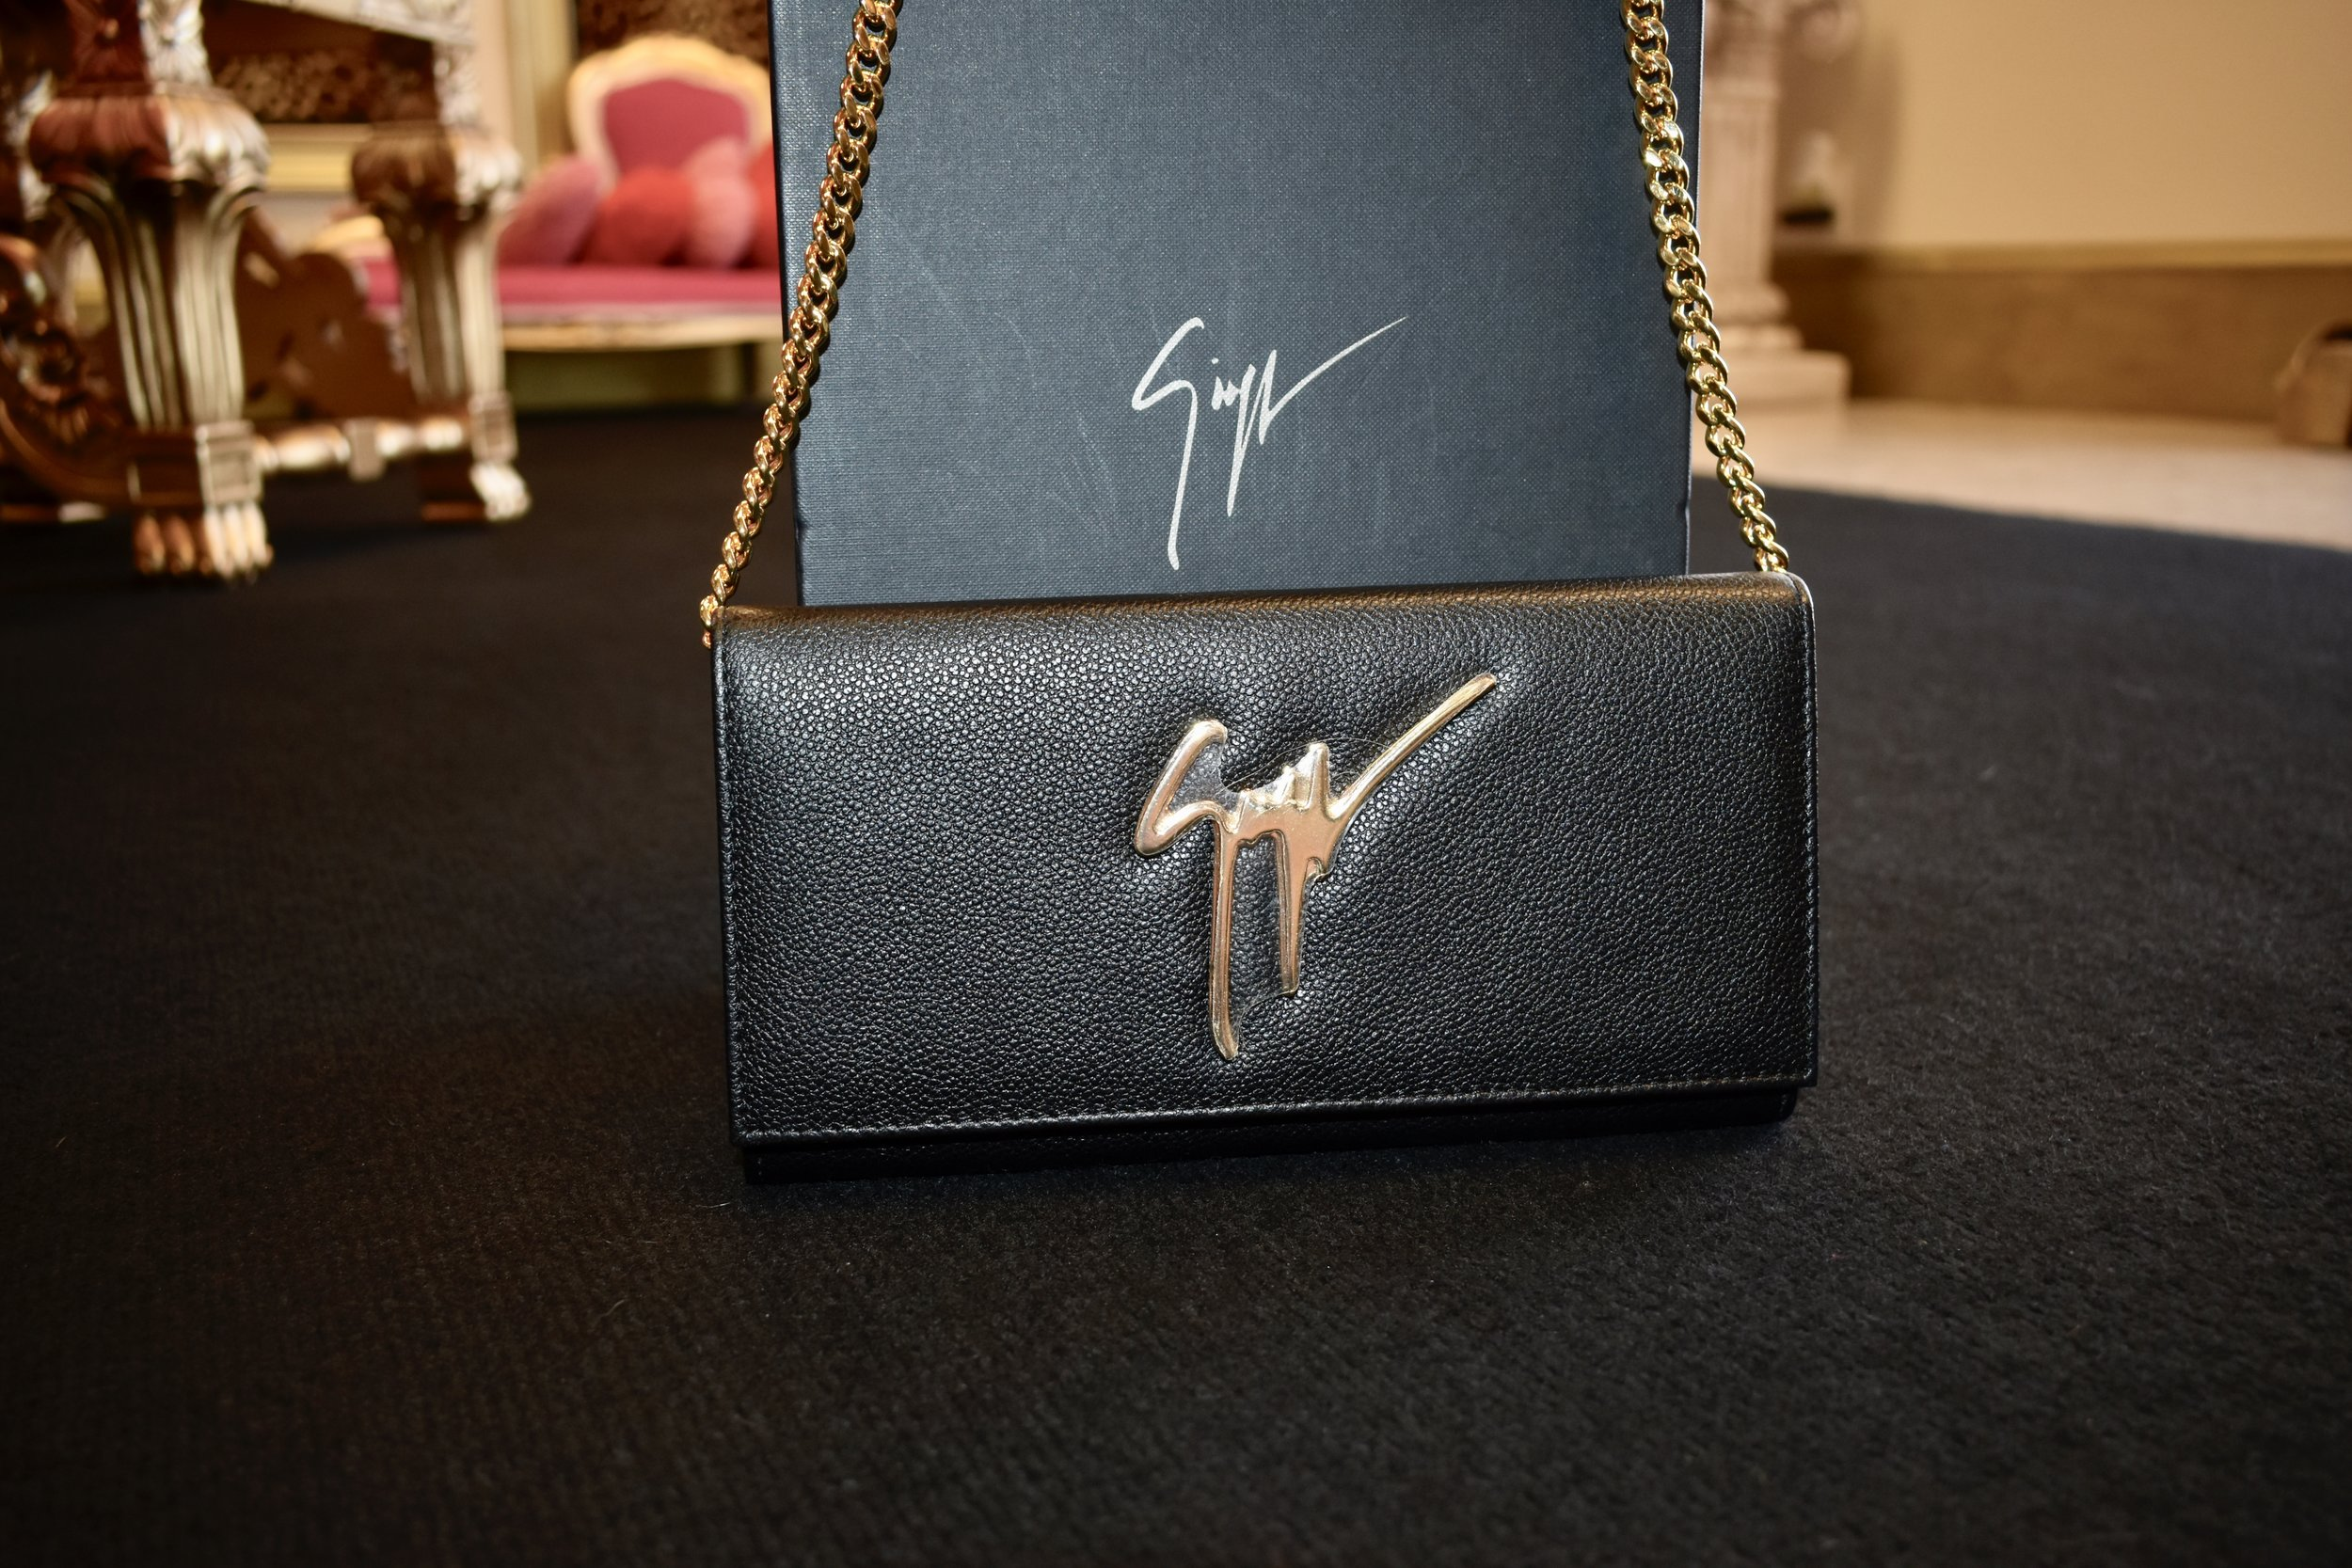 Giuseppe signature logo bag in black